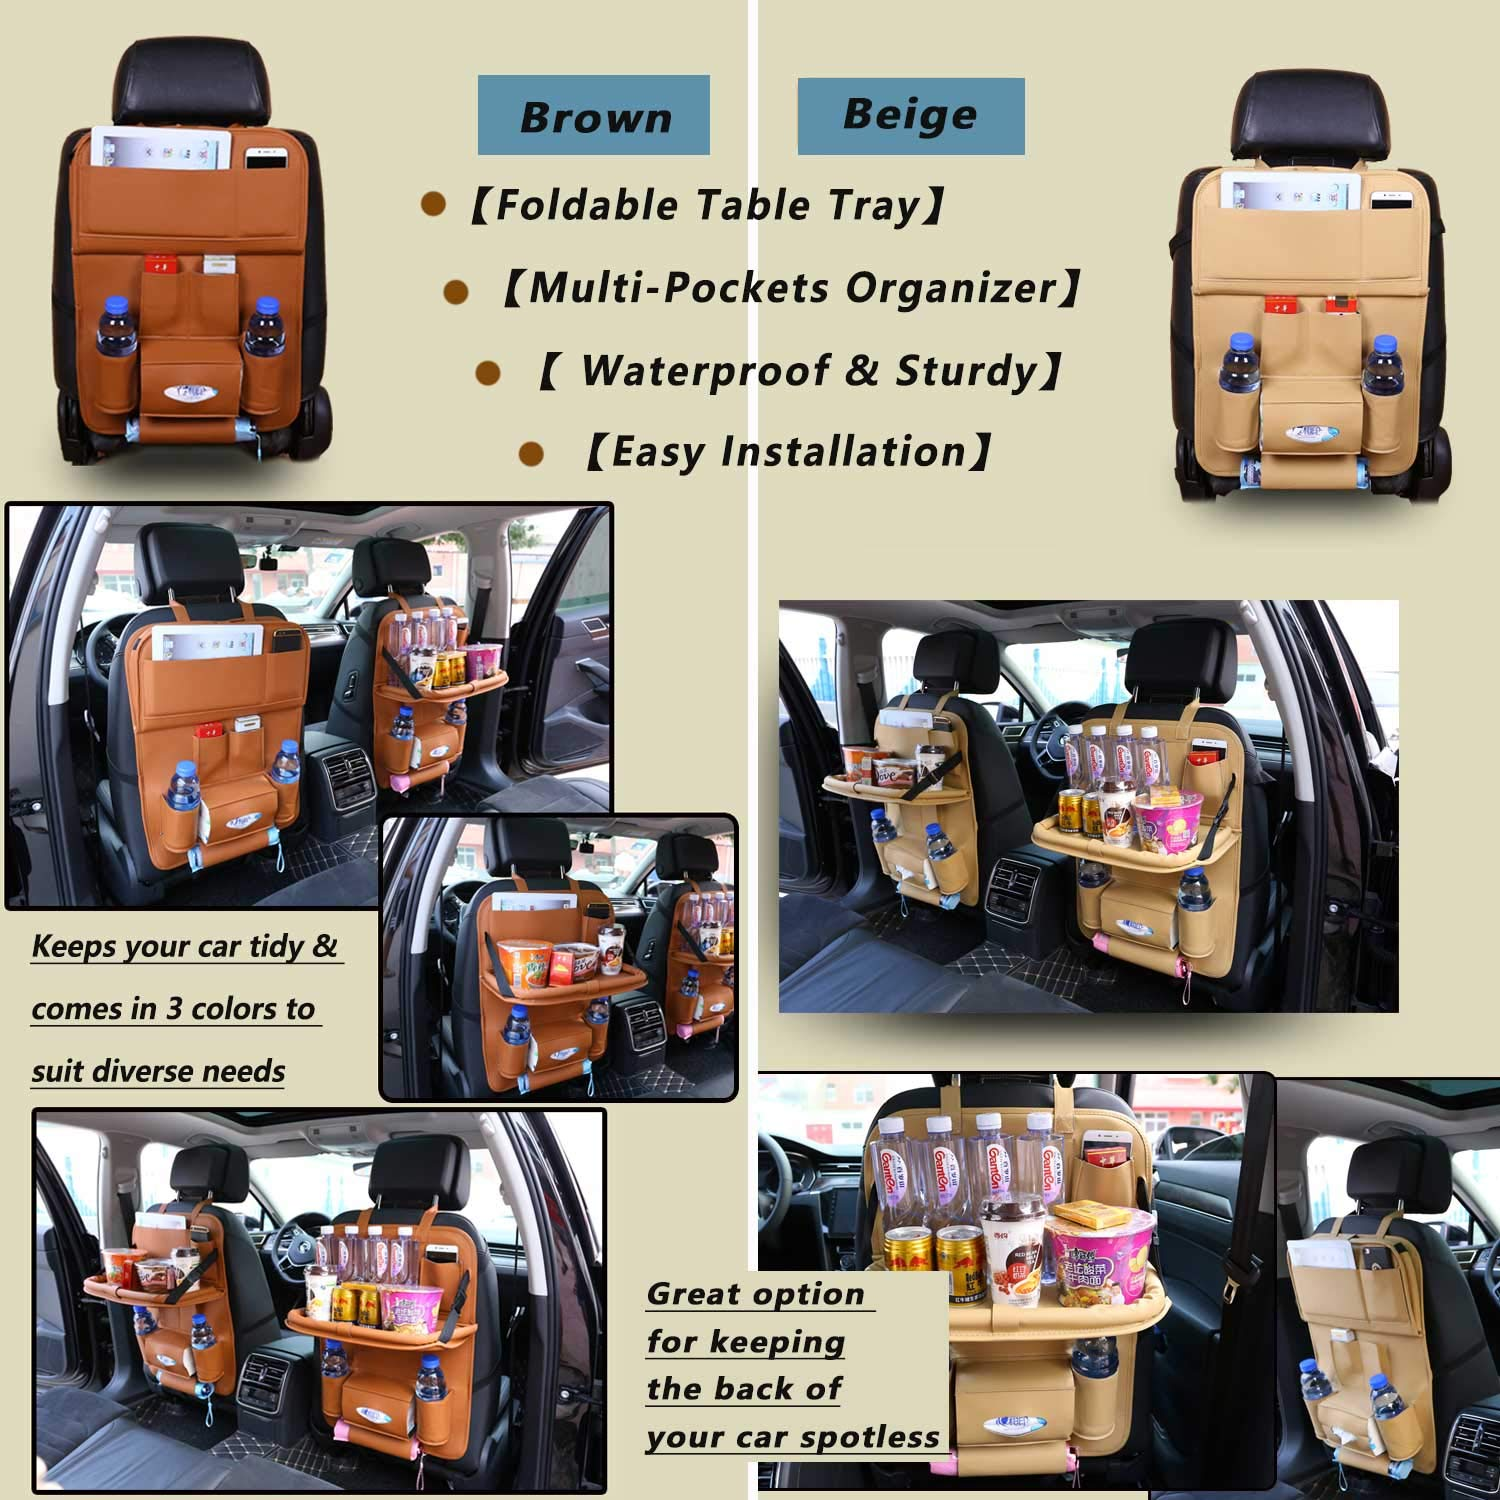 Eocean Car Backseat Protector Organize All Kids Travel Accessories Car Backseat Organizer with Leather Foldable Dining Table Tray for Baby and 10 Storage Organizers with Tablet Holder for iPad Brown